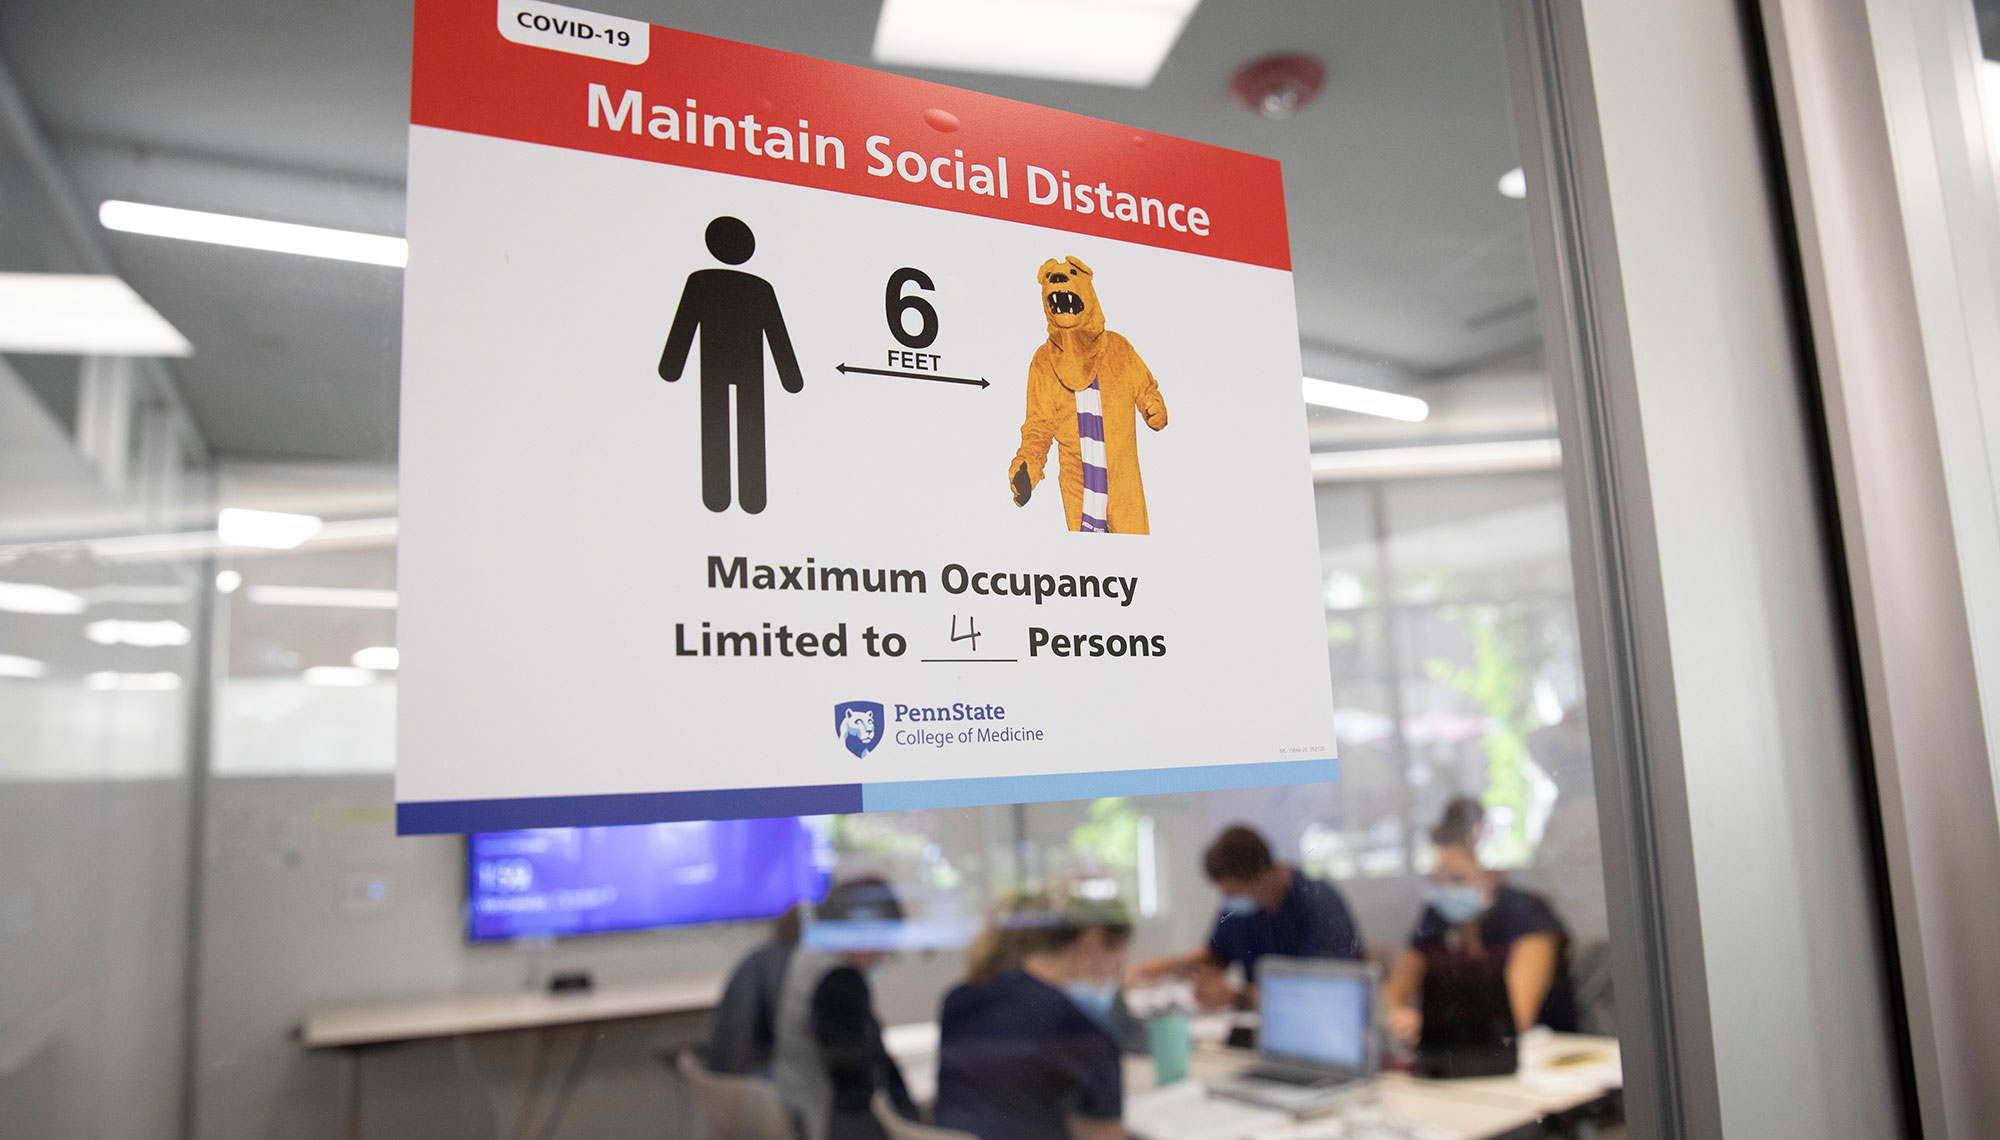 A sign noting a maximum occupancy of four people, and reminding people entering to stay six feet apart, appears on the door of a study room in Harrell Health Sciences Library in fall 2020. The precautions are due to COVID-19.